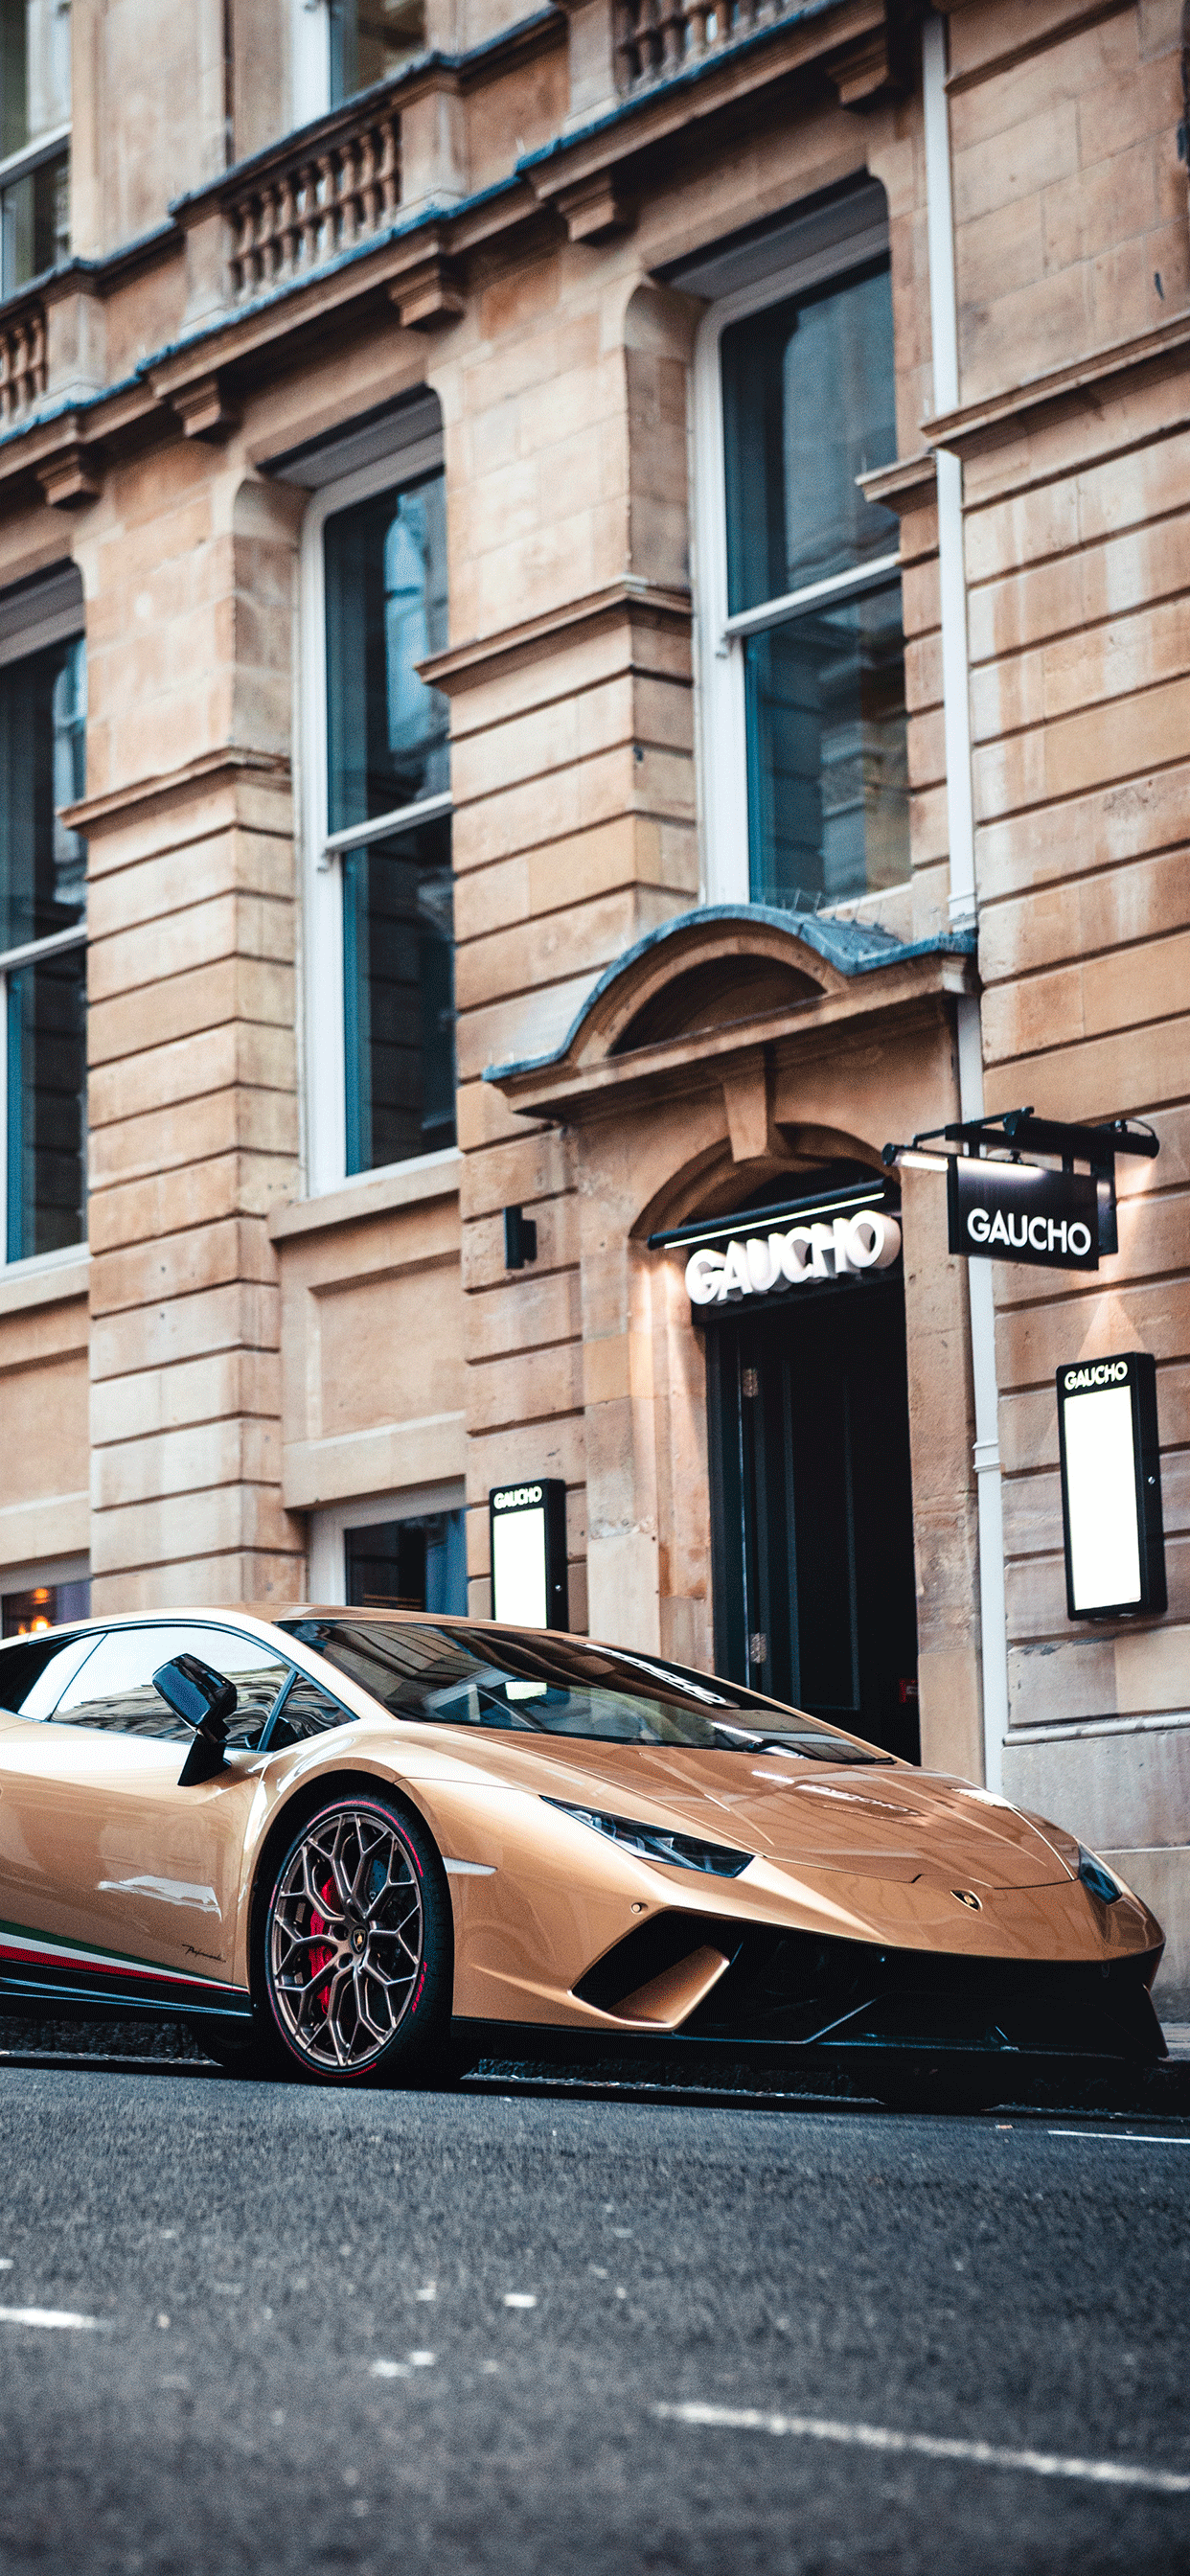 Lamborghini Wallpaper For Iphone X 8 7 6 Free Download On